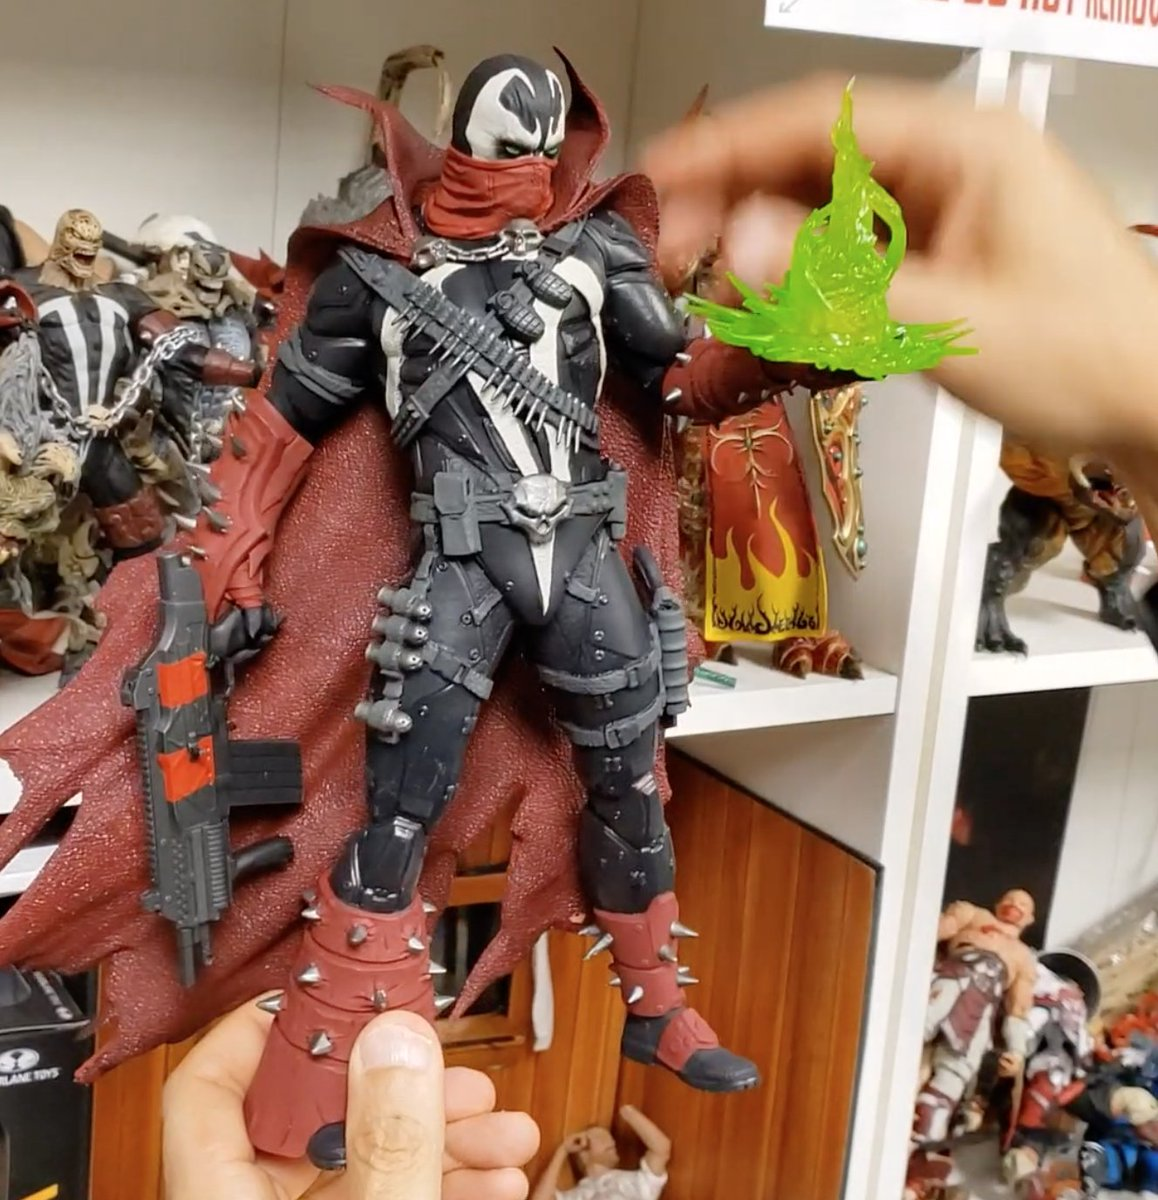 Todd Mcfarlane On Twitter Sexy Spawn Saturday With A New Spawn Action Figure Your First Look At 12 Commando Spawn From Mcfarlane Toys Joining The Mortalkombat Line In Spring 2021 Here Https T Co Viykubzpok